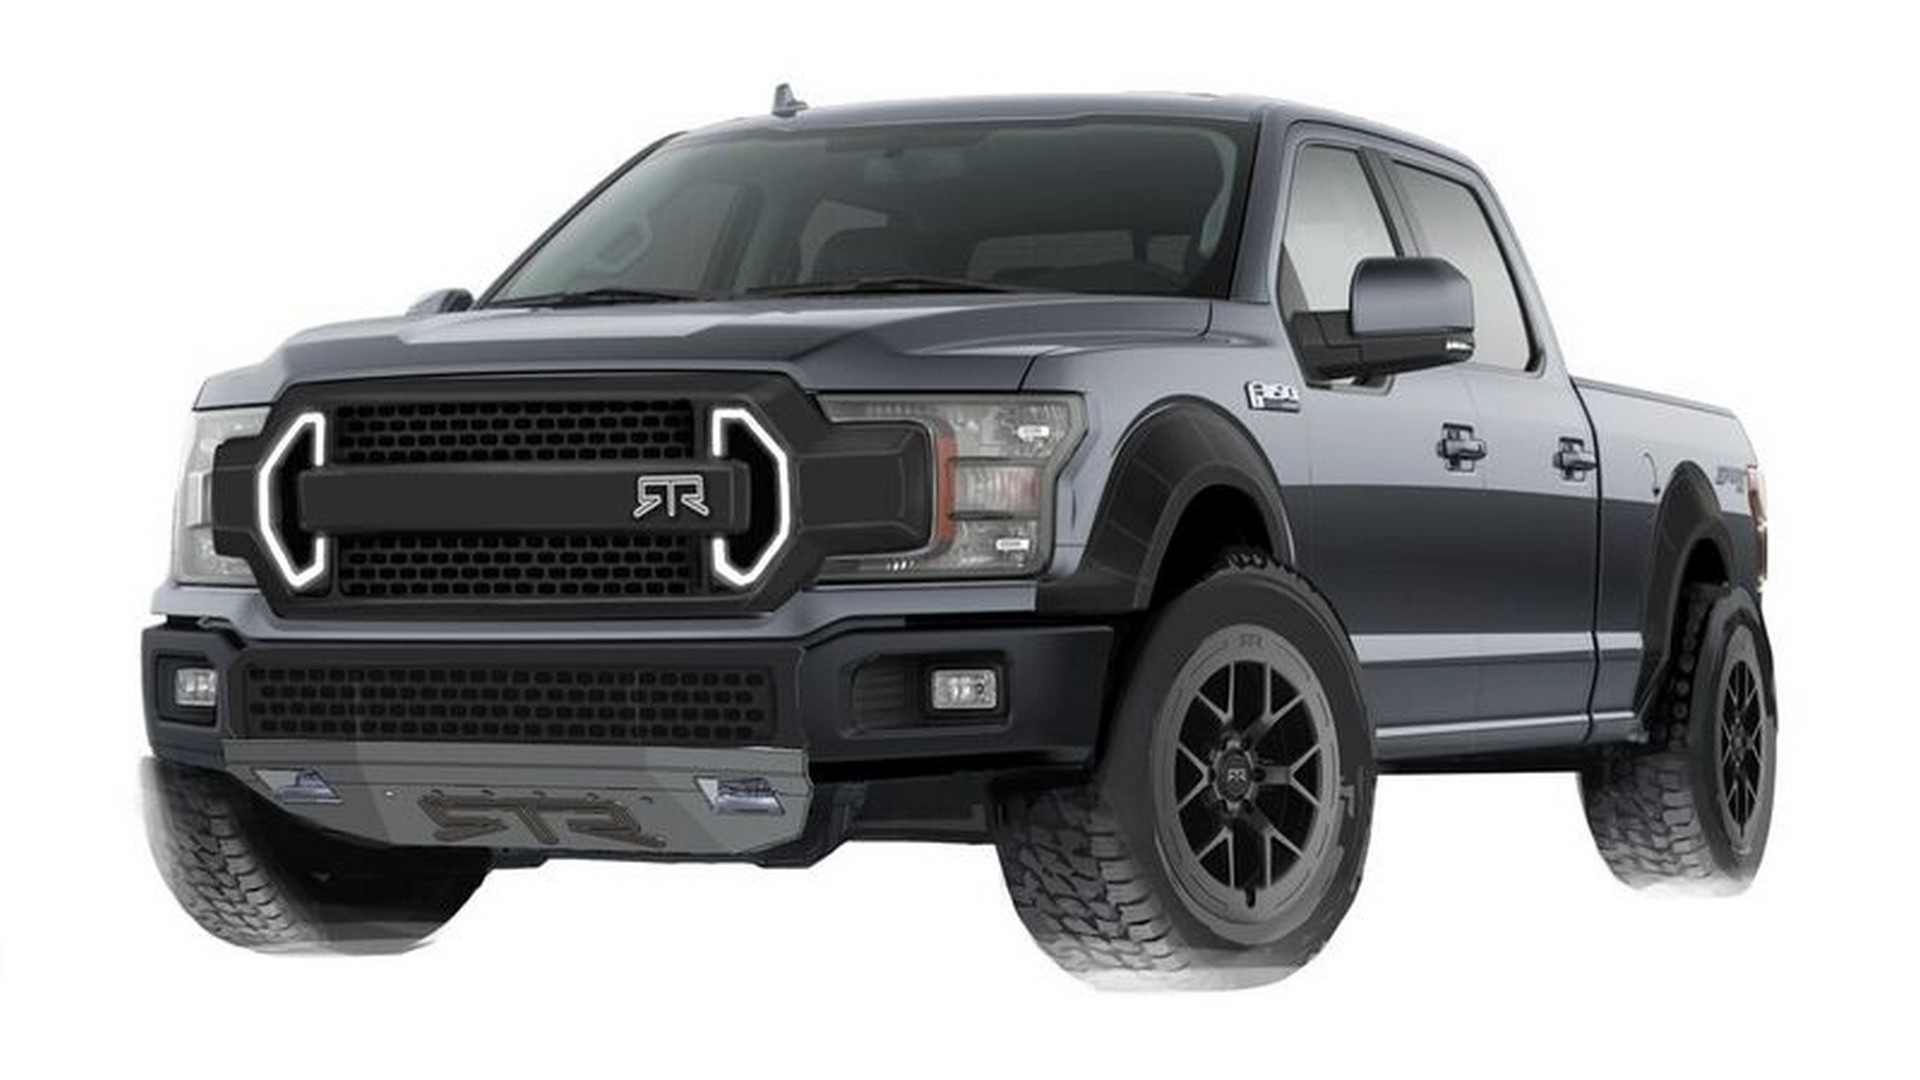 2018-f150-rtr-f150-front-v10-1